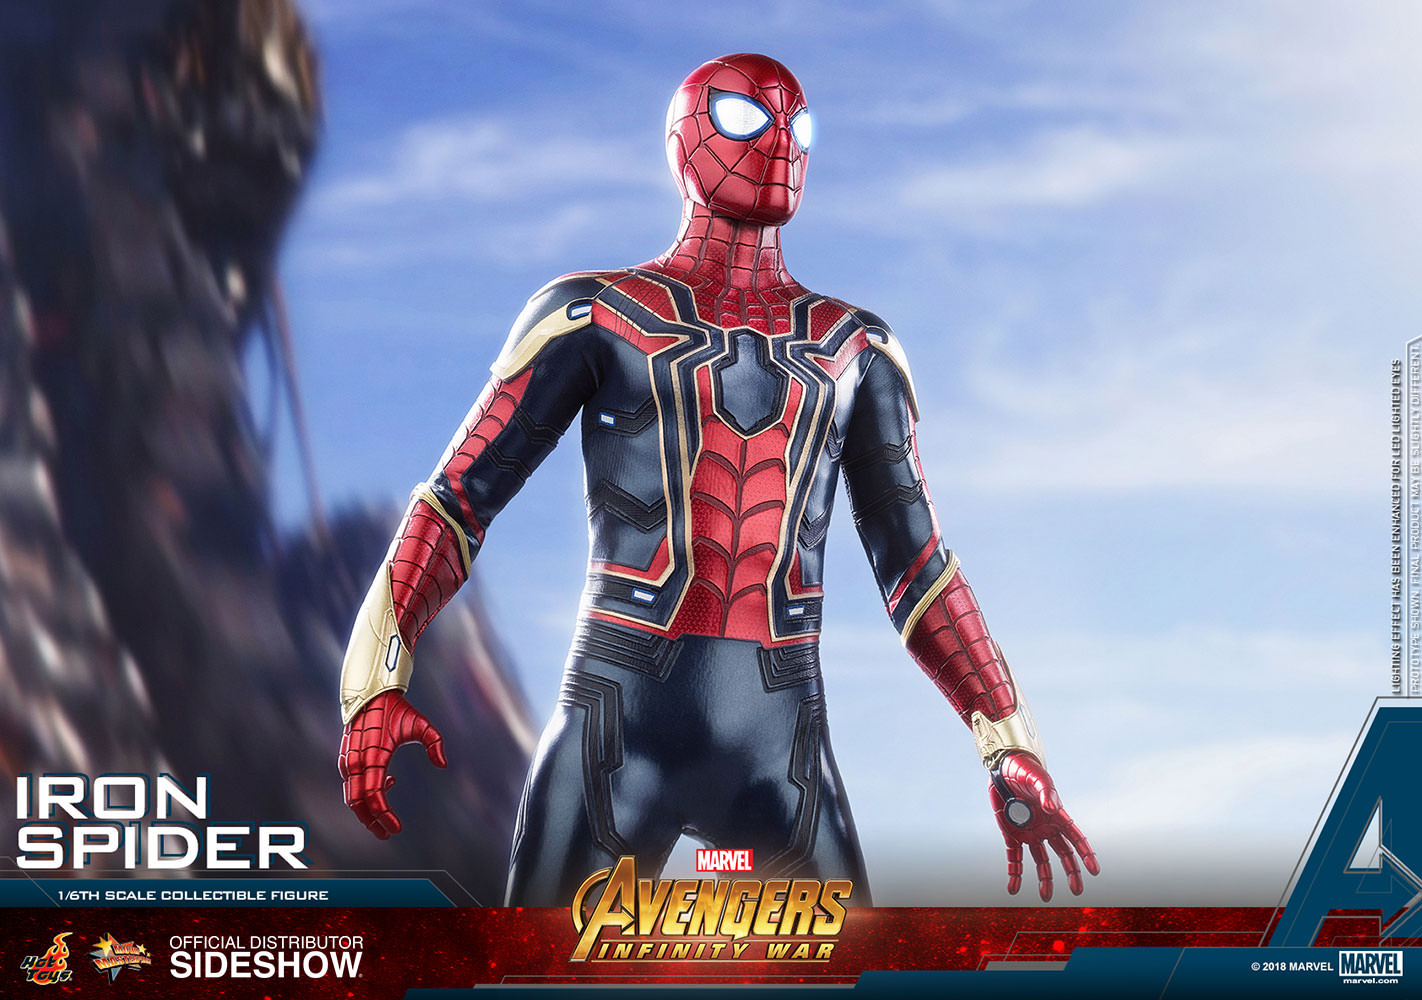 Marvel Avengers Infinity War Iron Spider Sixth Scale Hot